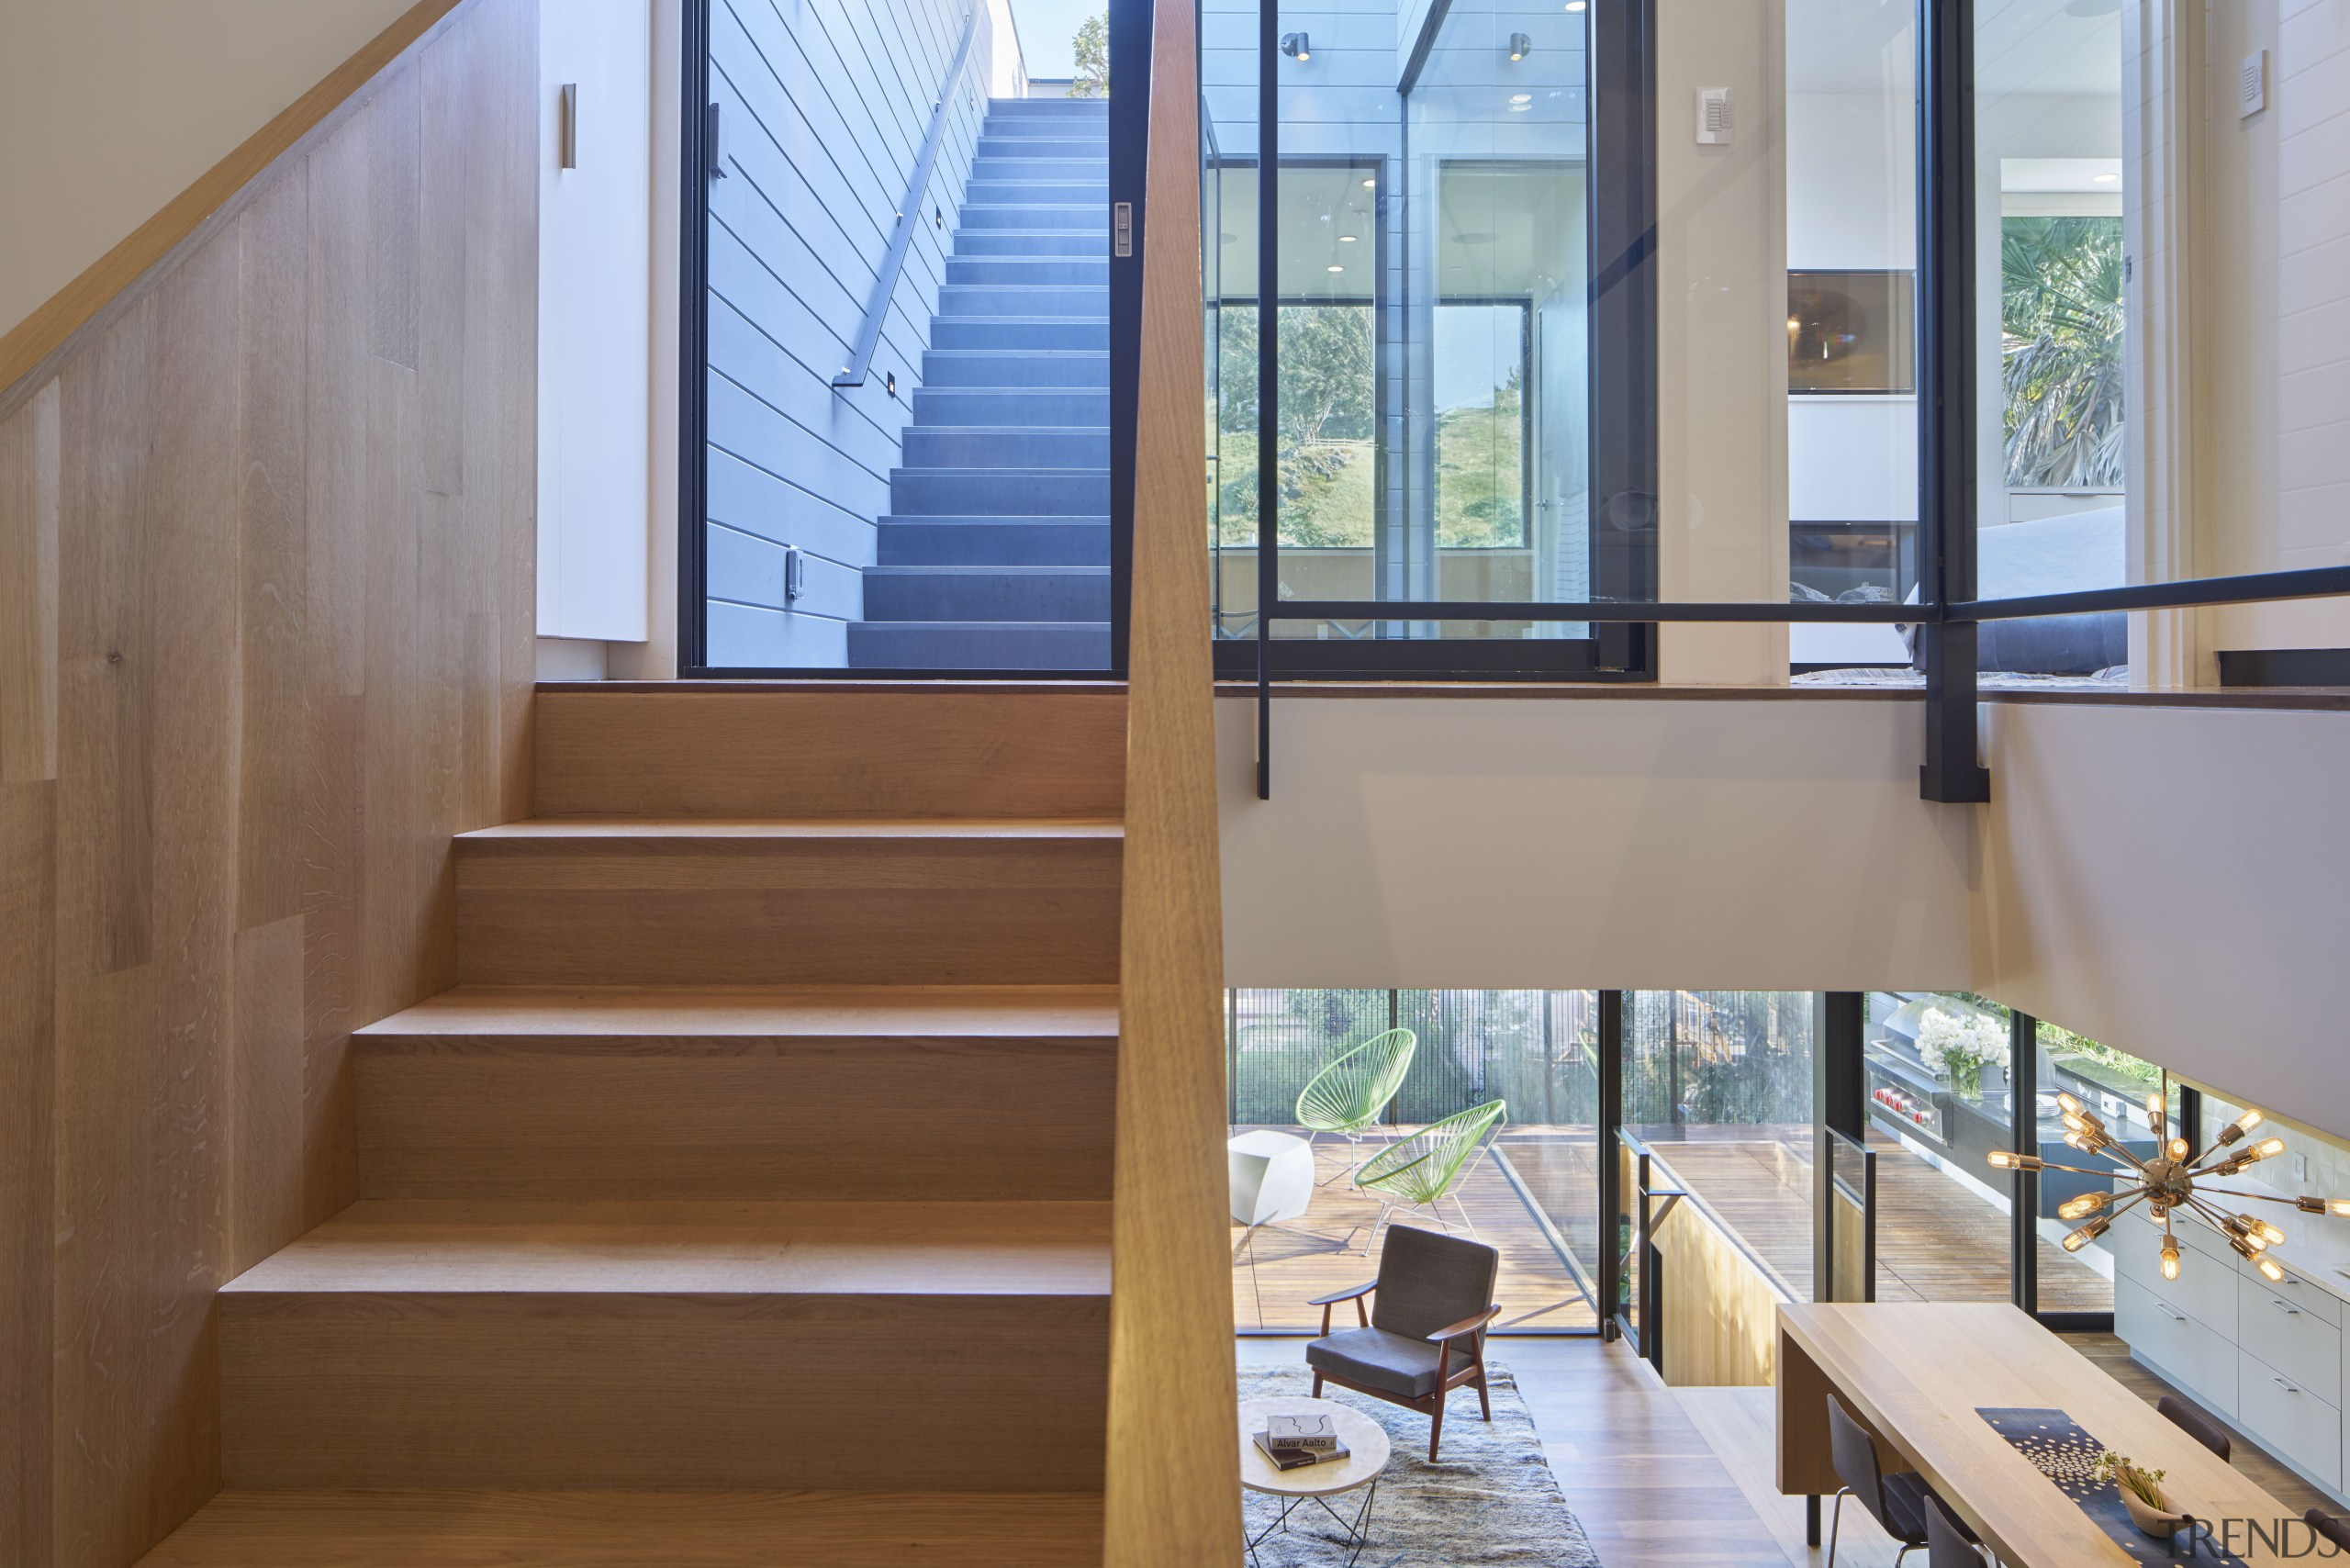 This kitchen connects to two outdoor living spaces architecture, daylighting, handrail, house, interior design, real estate, stairs, gray, brown